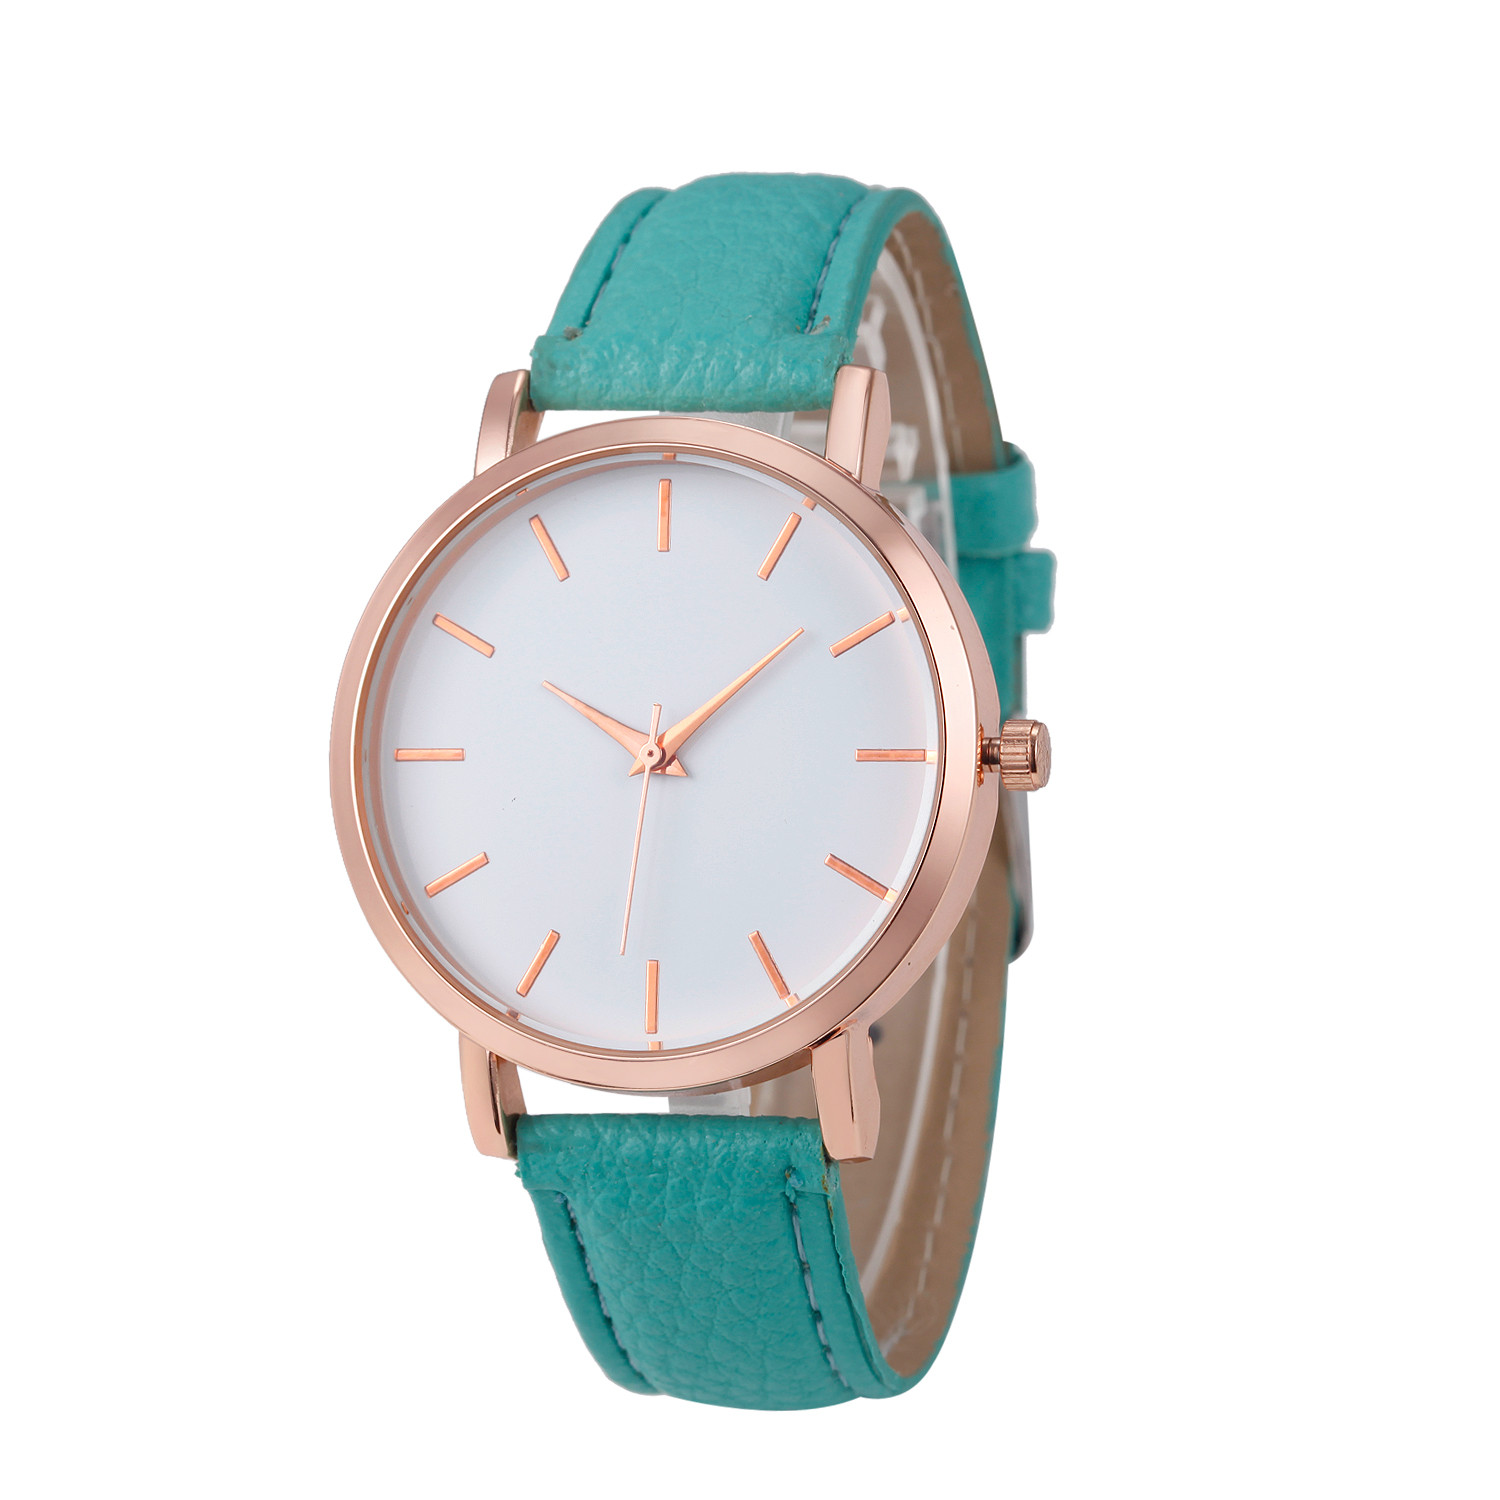 Fashion Lady Watch with Turquoise Leather Strap